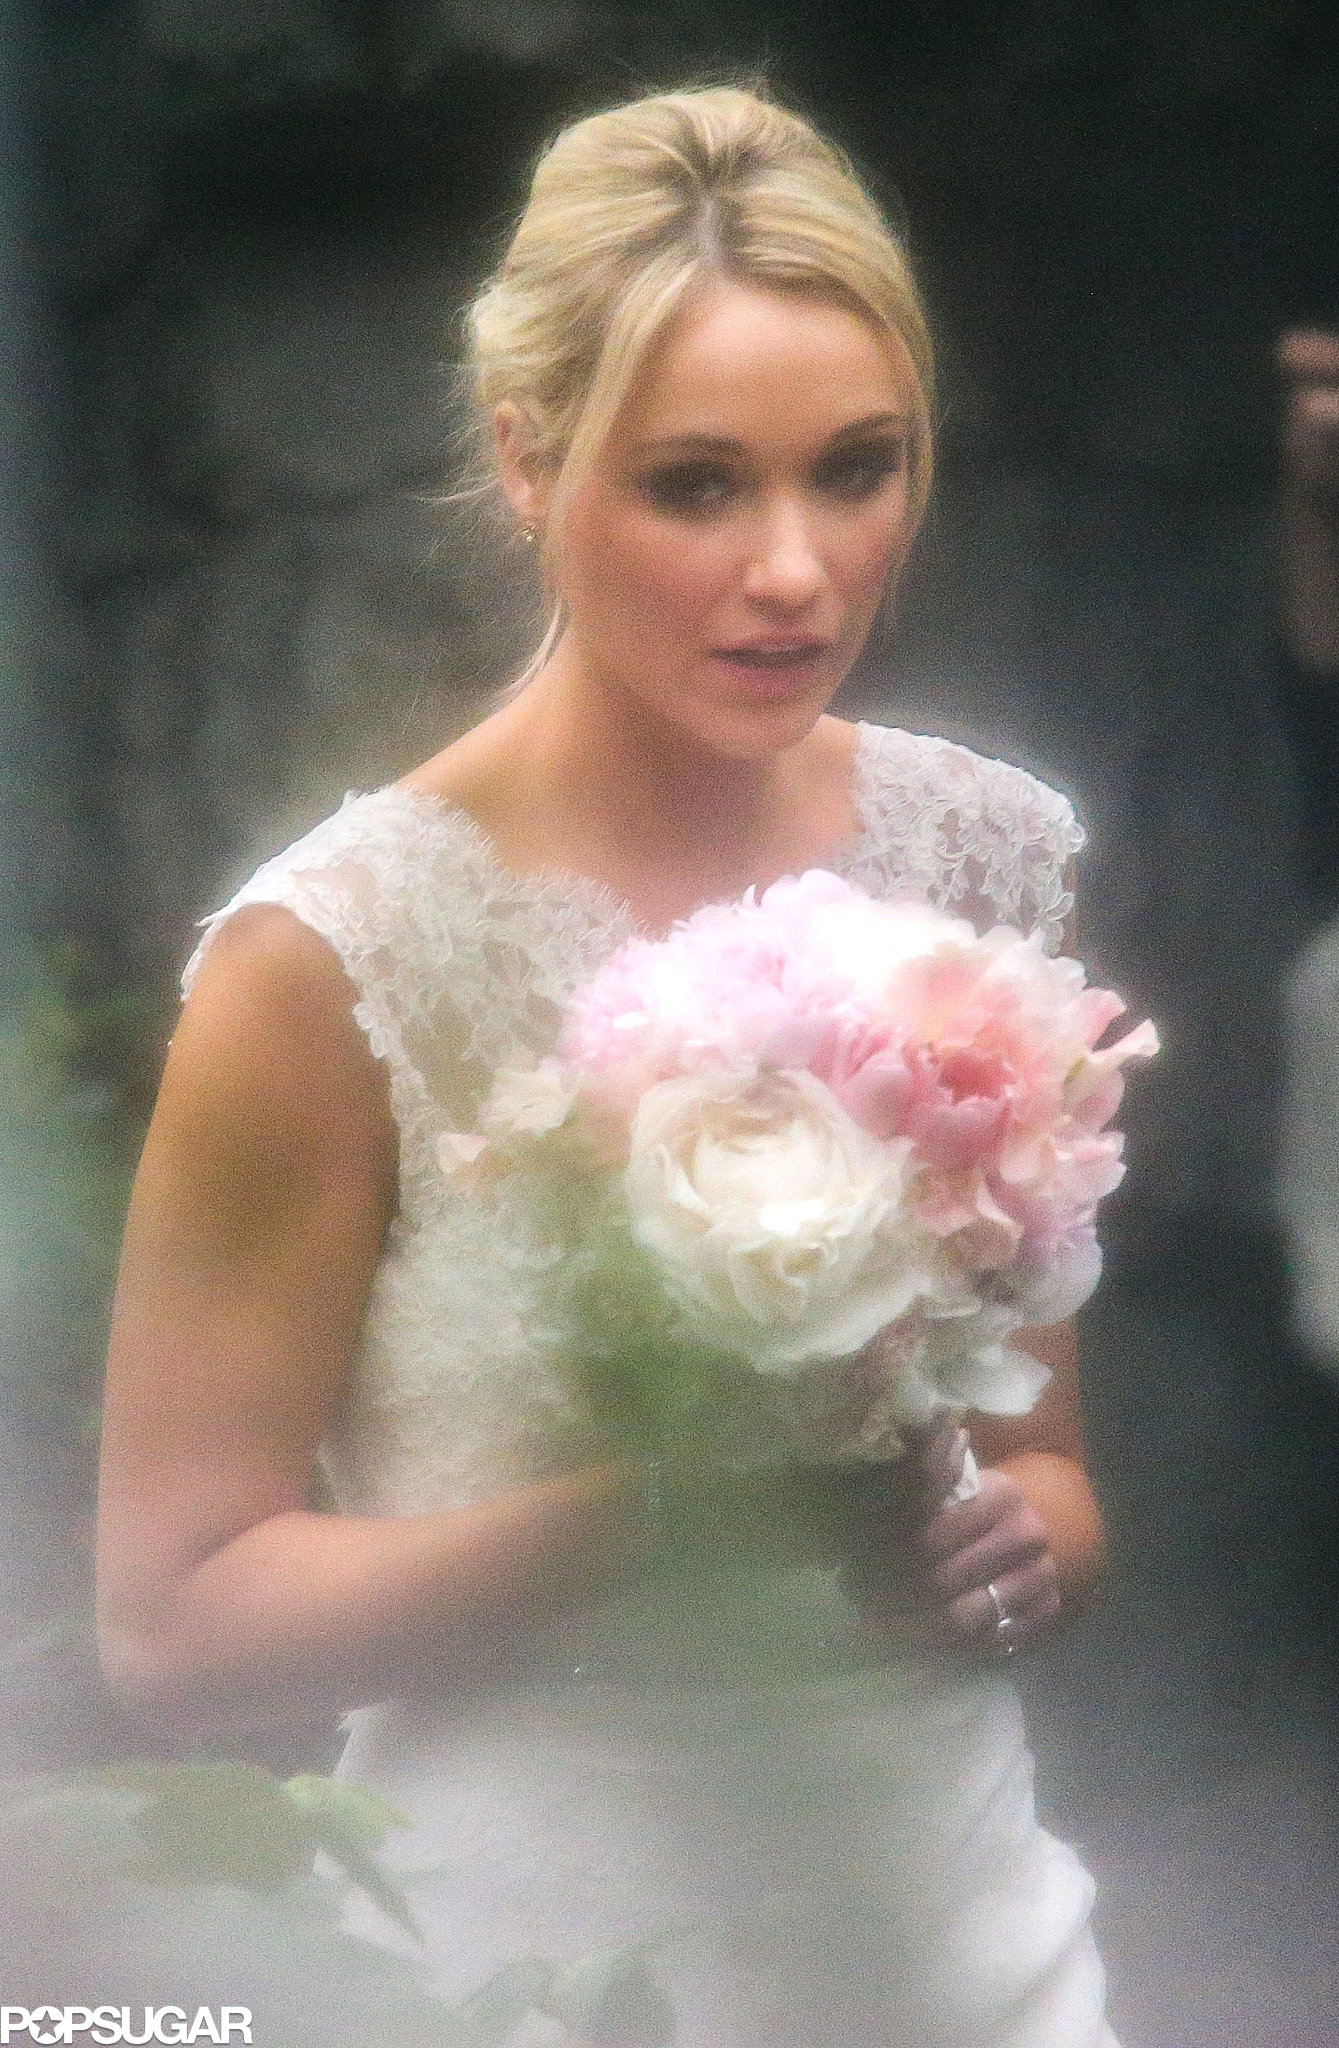 Katrina Bowden got married to Ben Jorgensen.